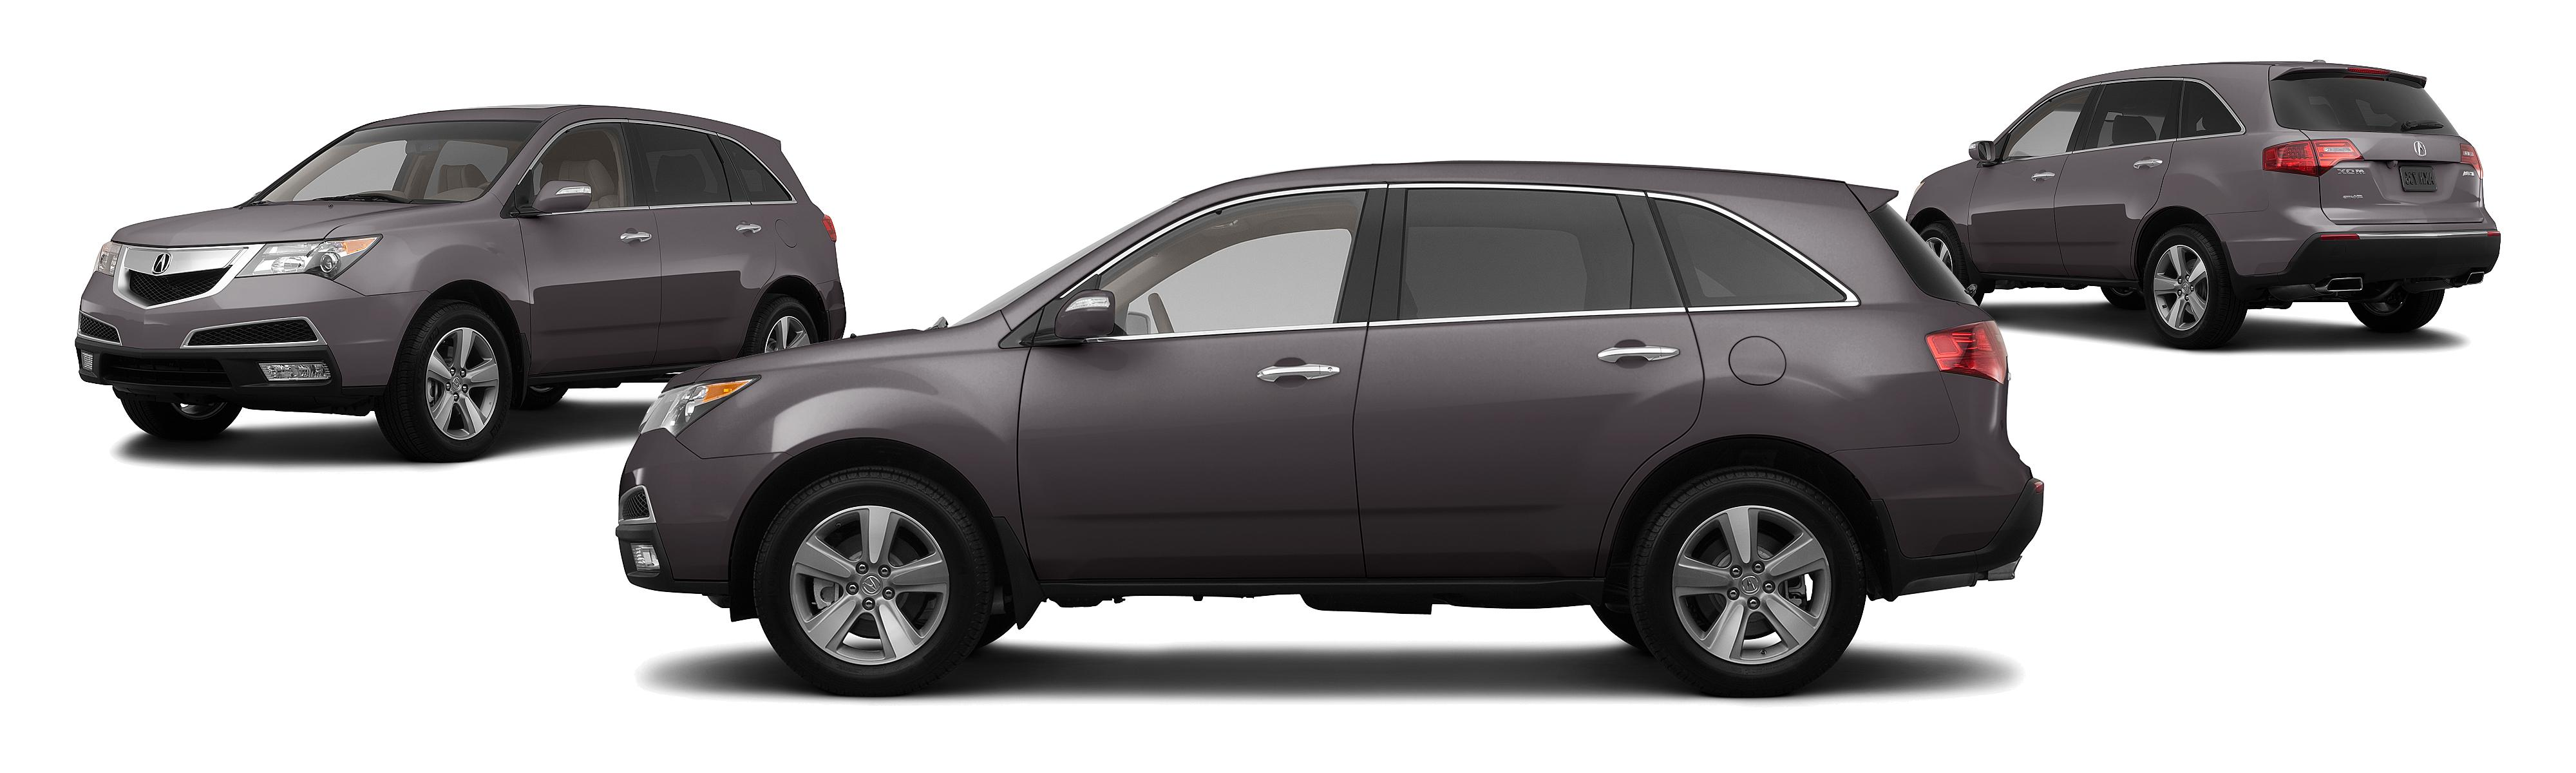 specs autotrader ca research photos acura trims reviews price mdx options